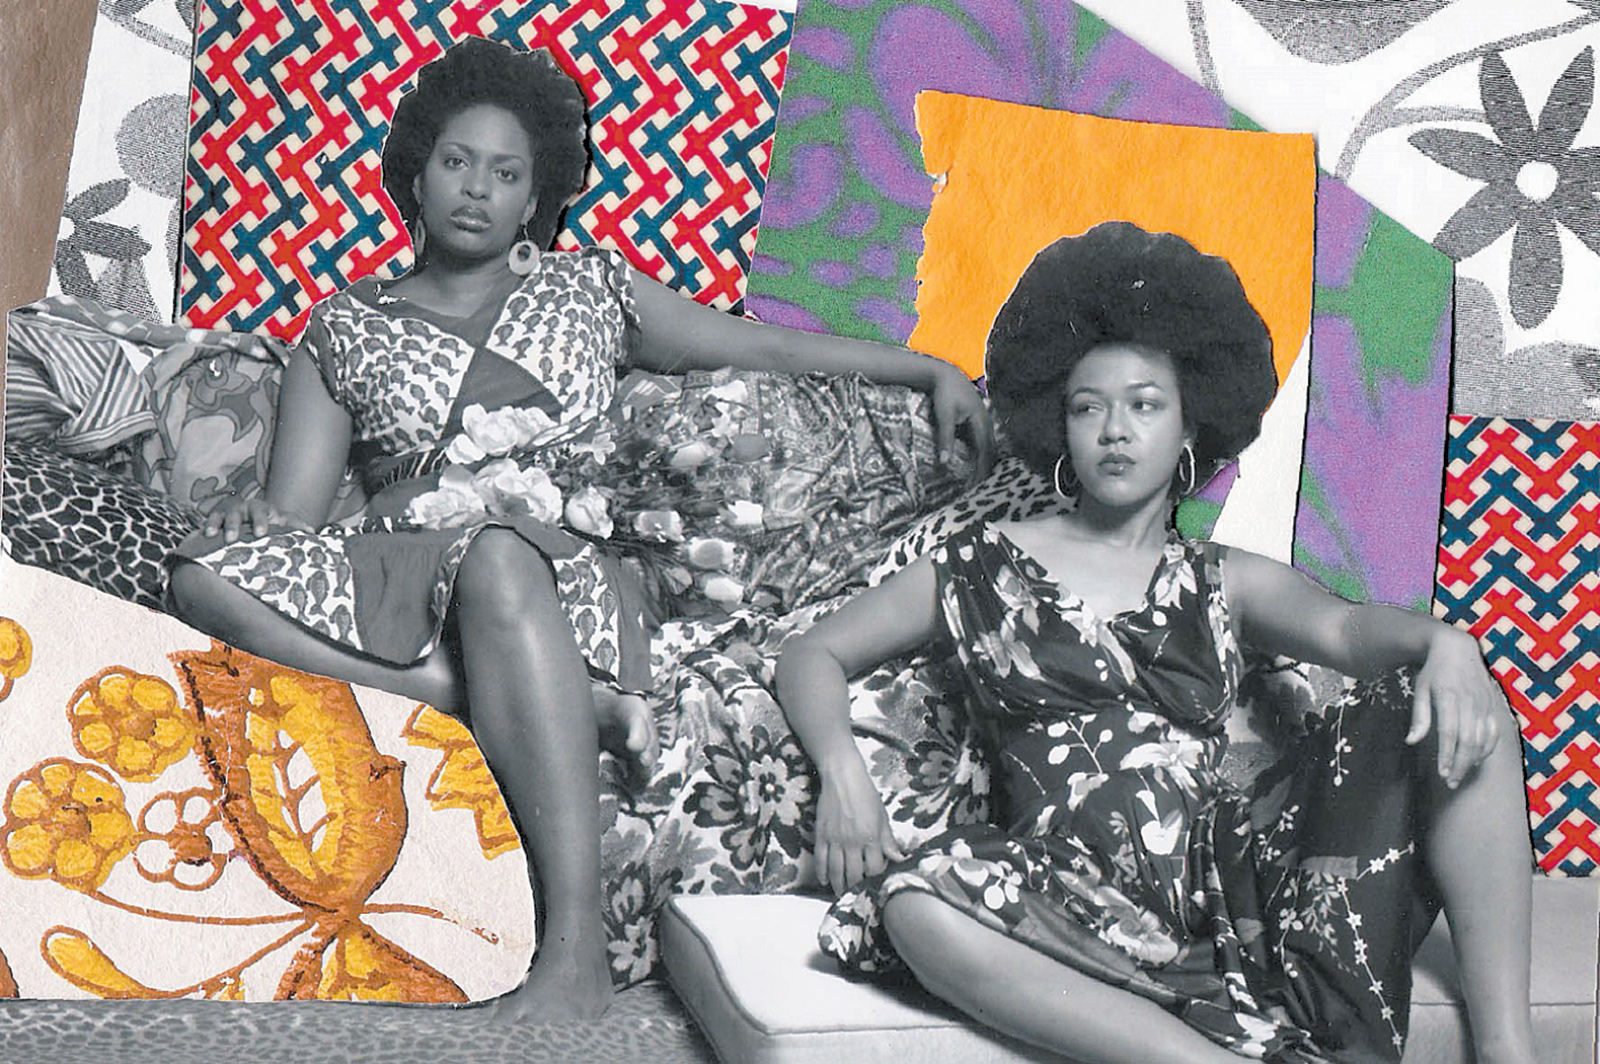 Mickalene Thomas: A Moment's Pleasure #2, 2007; from the book Muse: Mickalene Thomas: Photographs, just published by Aperture